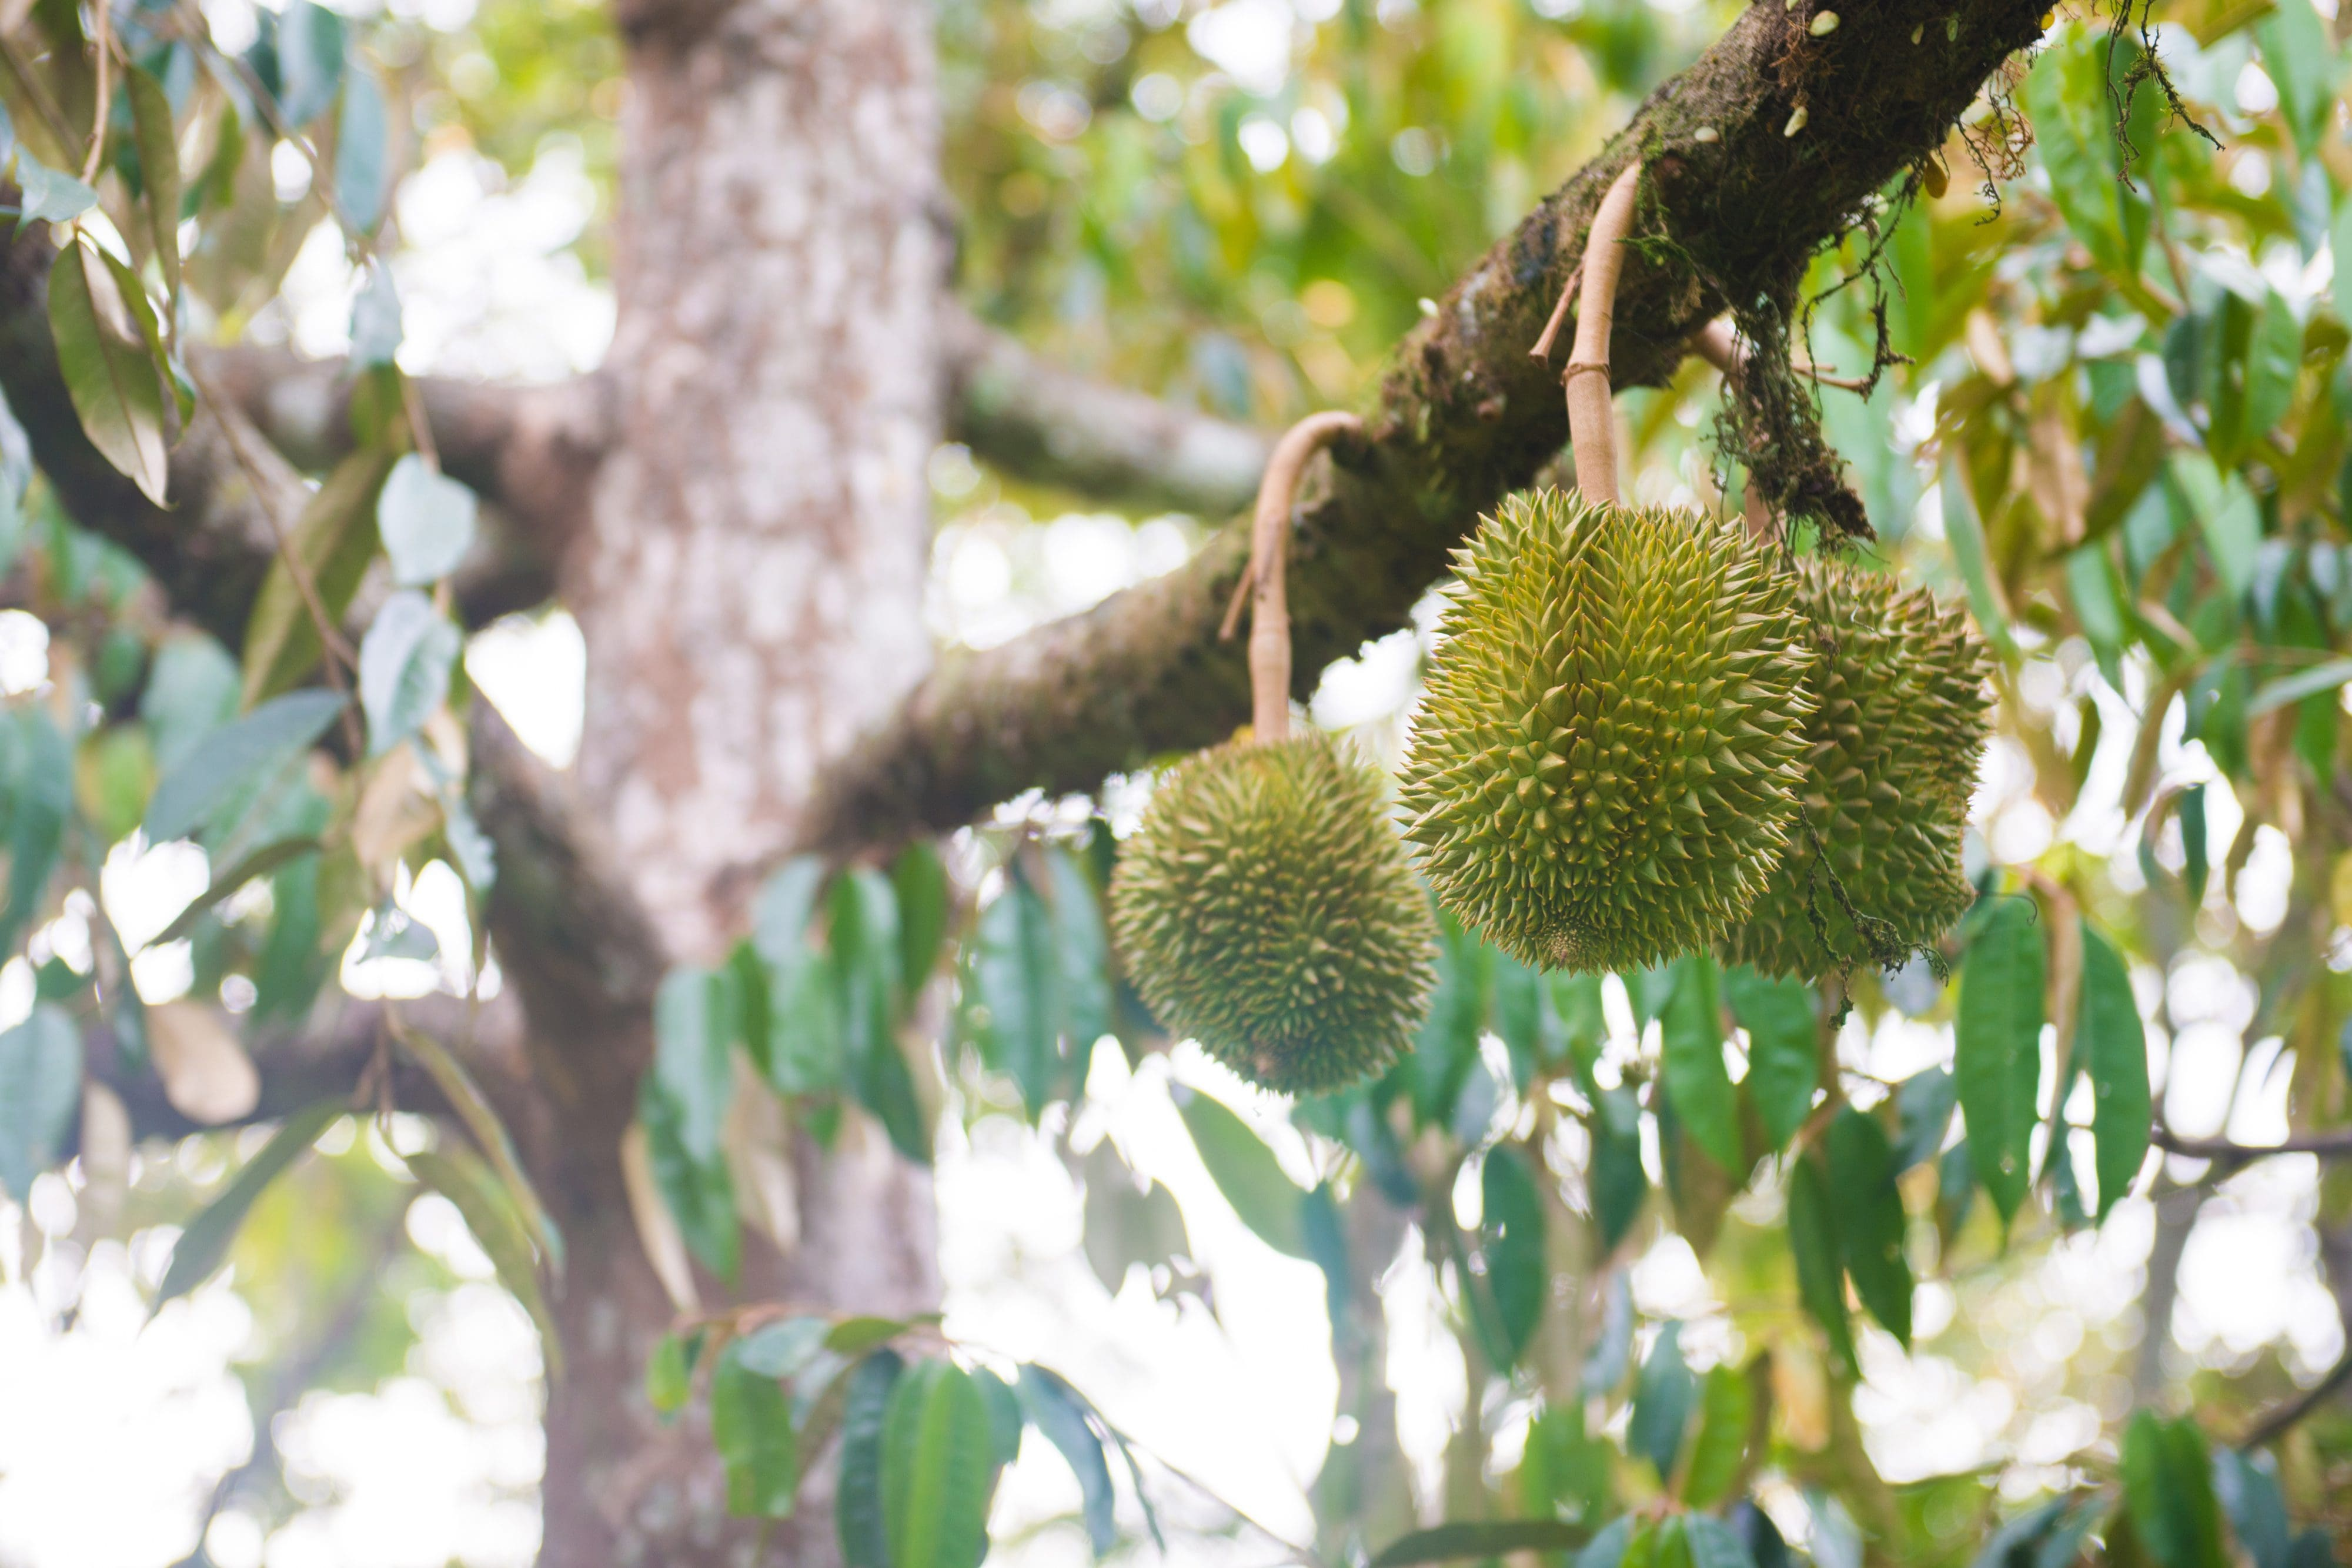 Close up of a durian tree with three hanging fruit